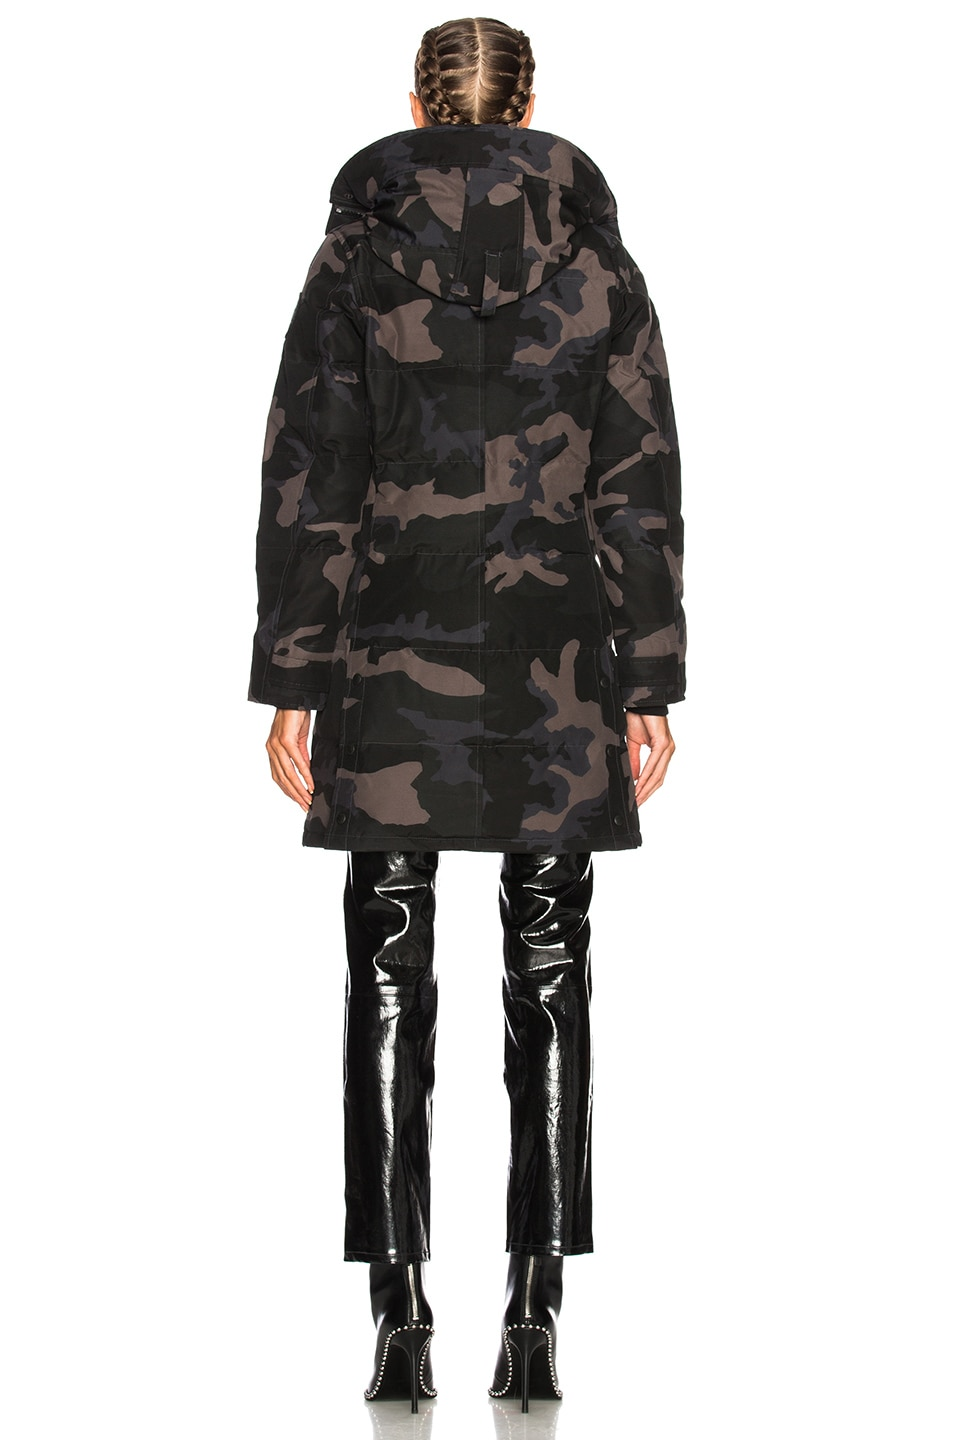 Image 5 of Canada Goose Shelburne Parka in Black Camo